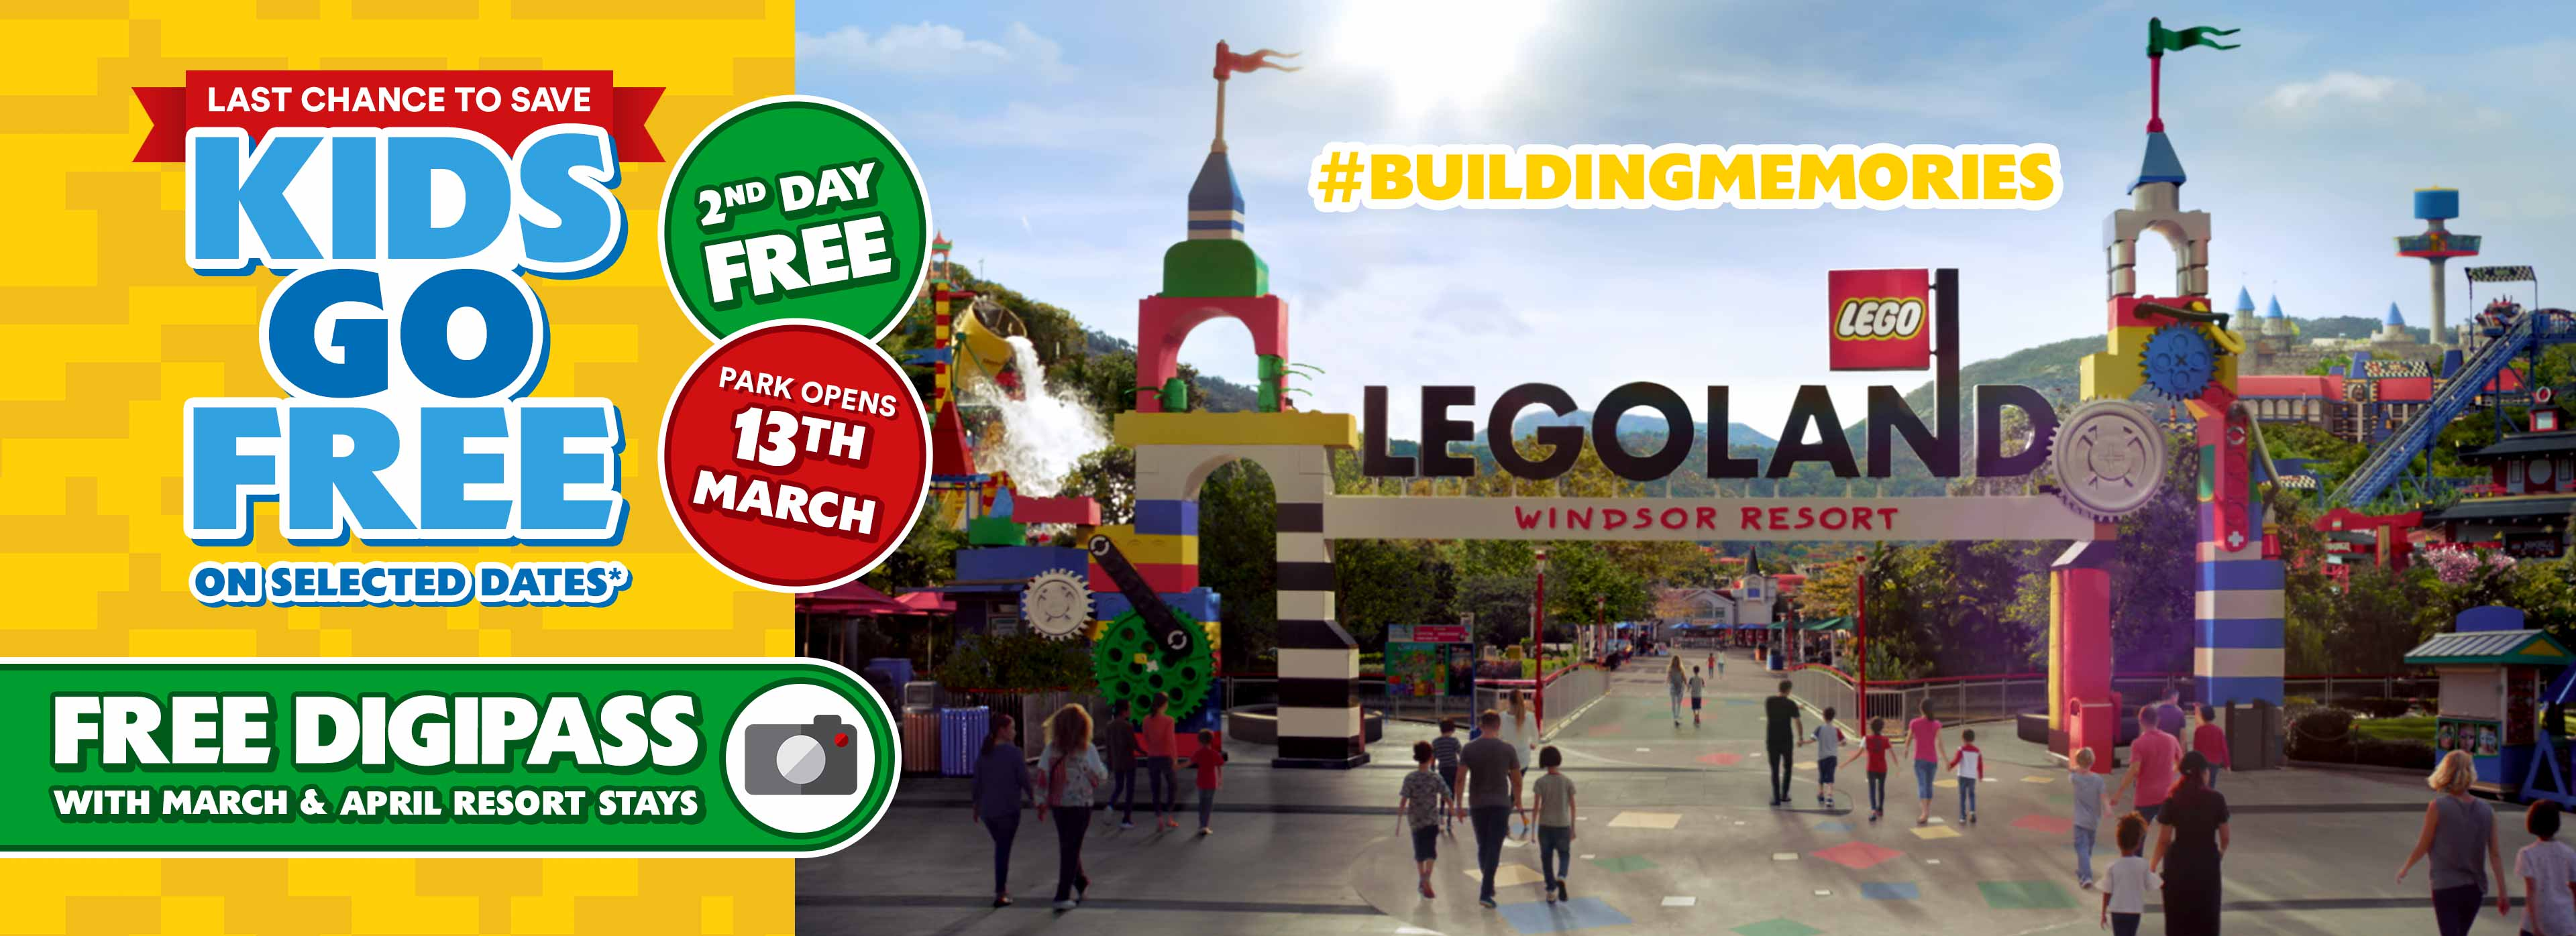 Treat the family to a LEGOLAND® Windsor holiday in 2020 and your Kids Go FREE!